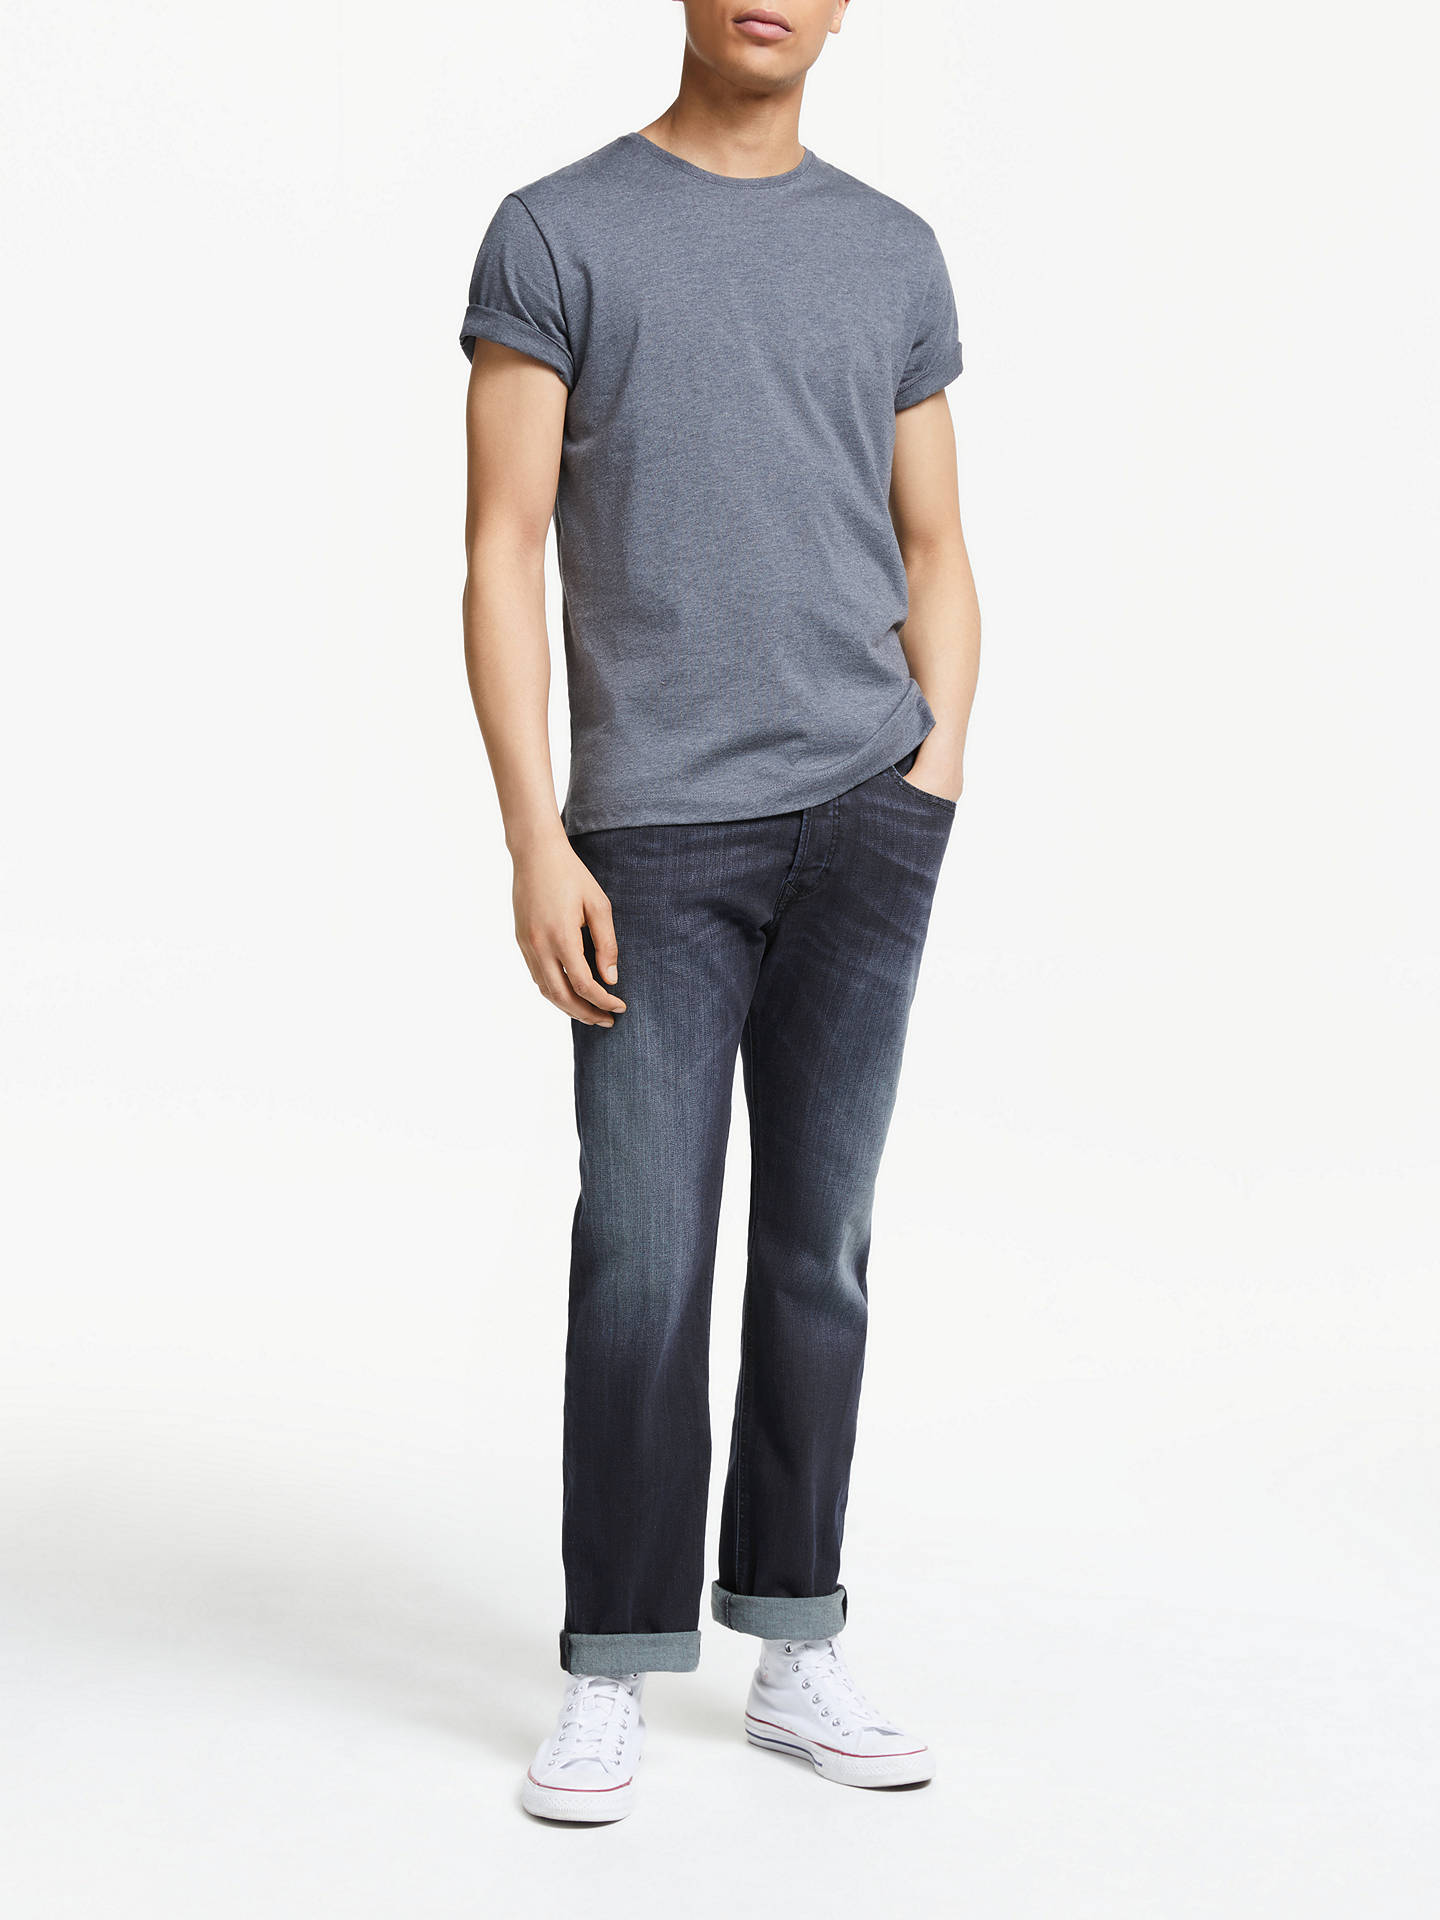 a3878fc0 ... Buy Diesel Waykee Straight Jeans, Mid Wash 0814W, 28S Online at  johnlewis.com ...